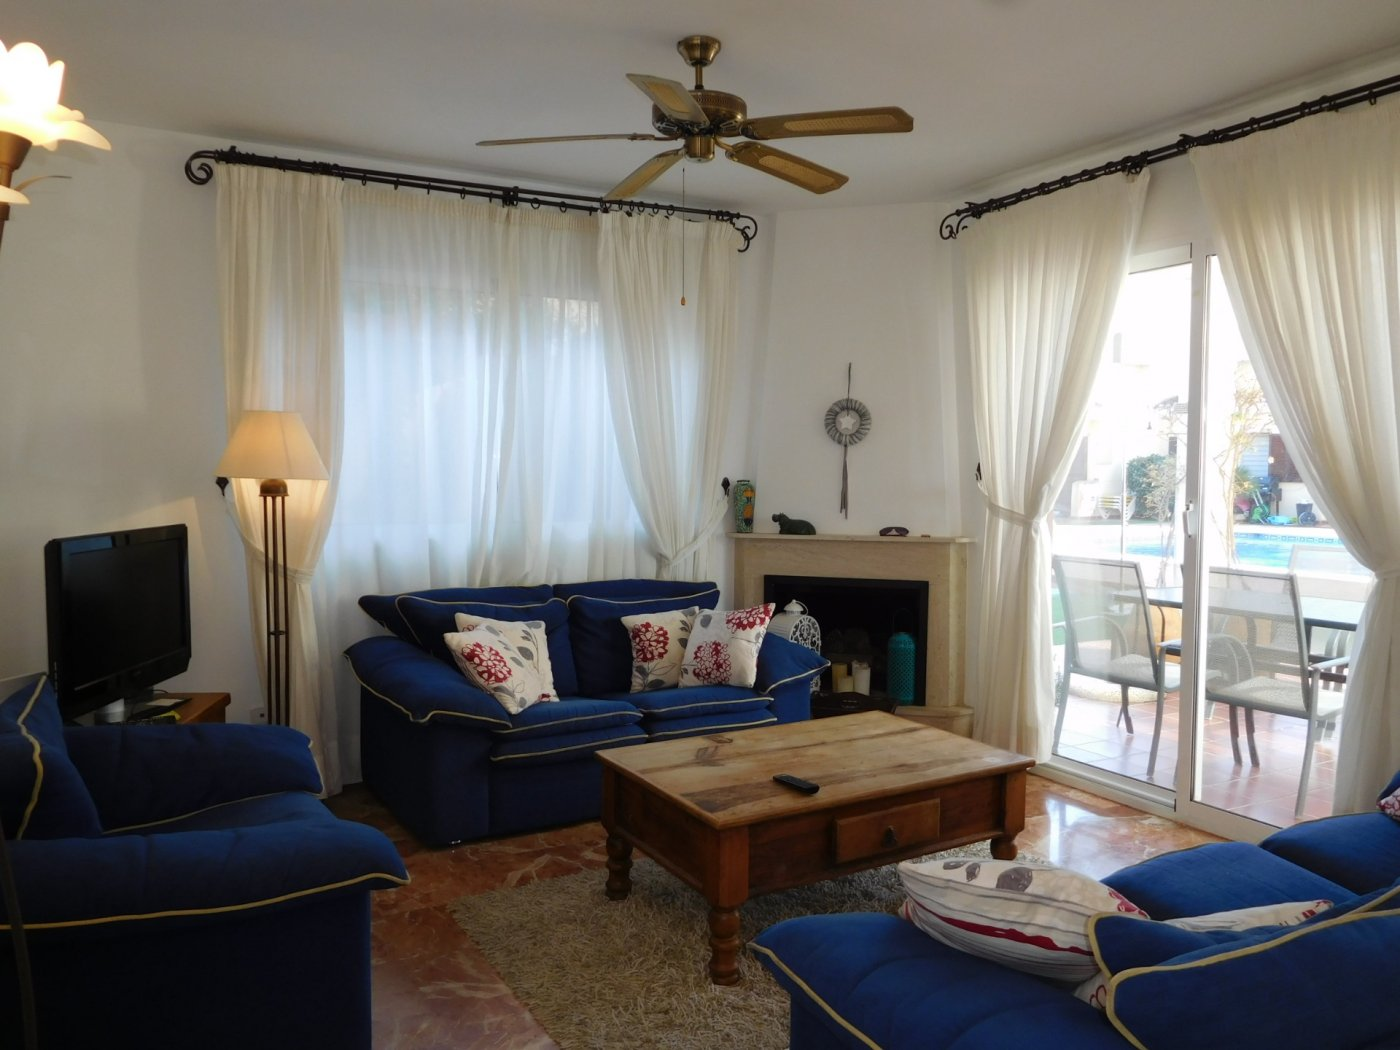 Gallery Image 2 of Casa For rent in Los Naranjos, La Manga Club With Pool